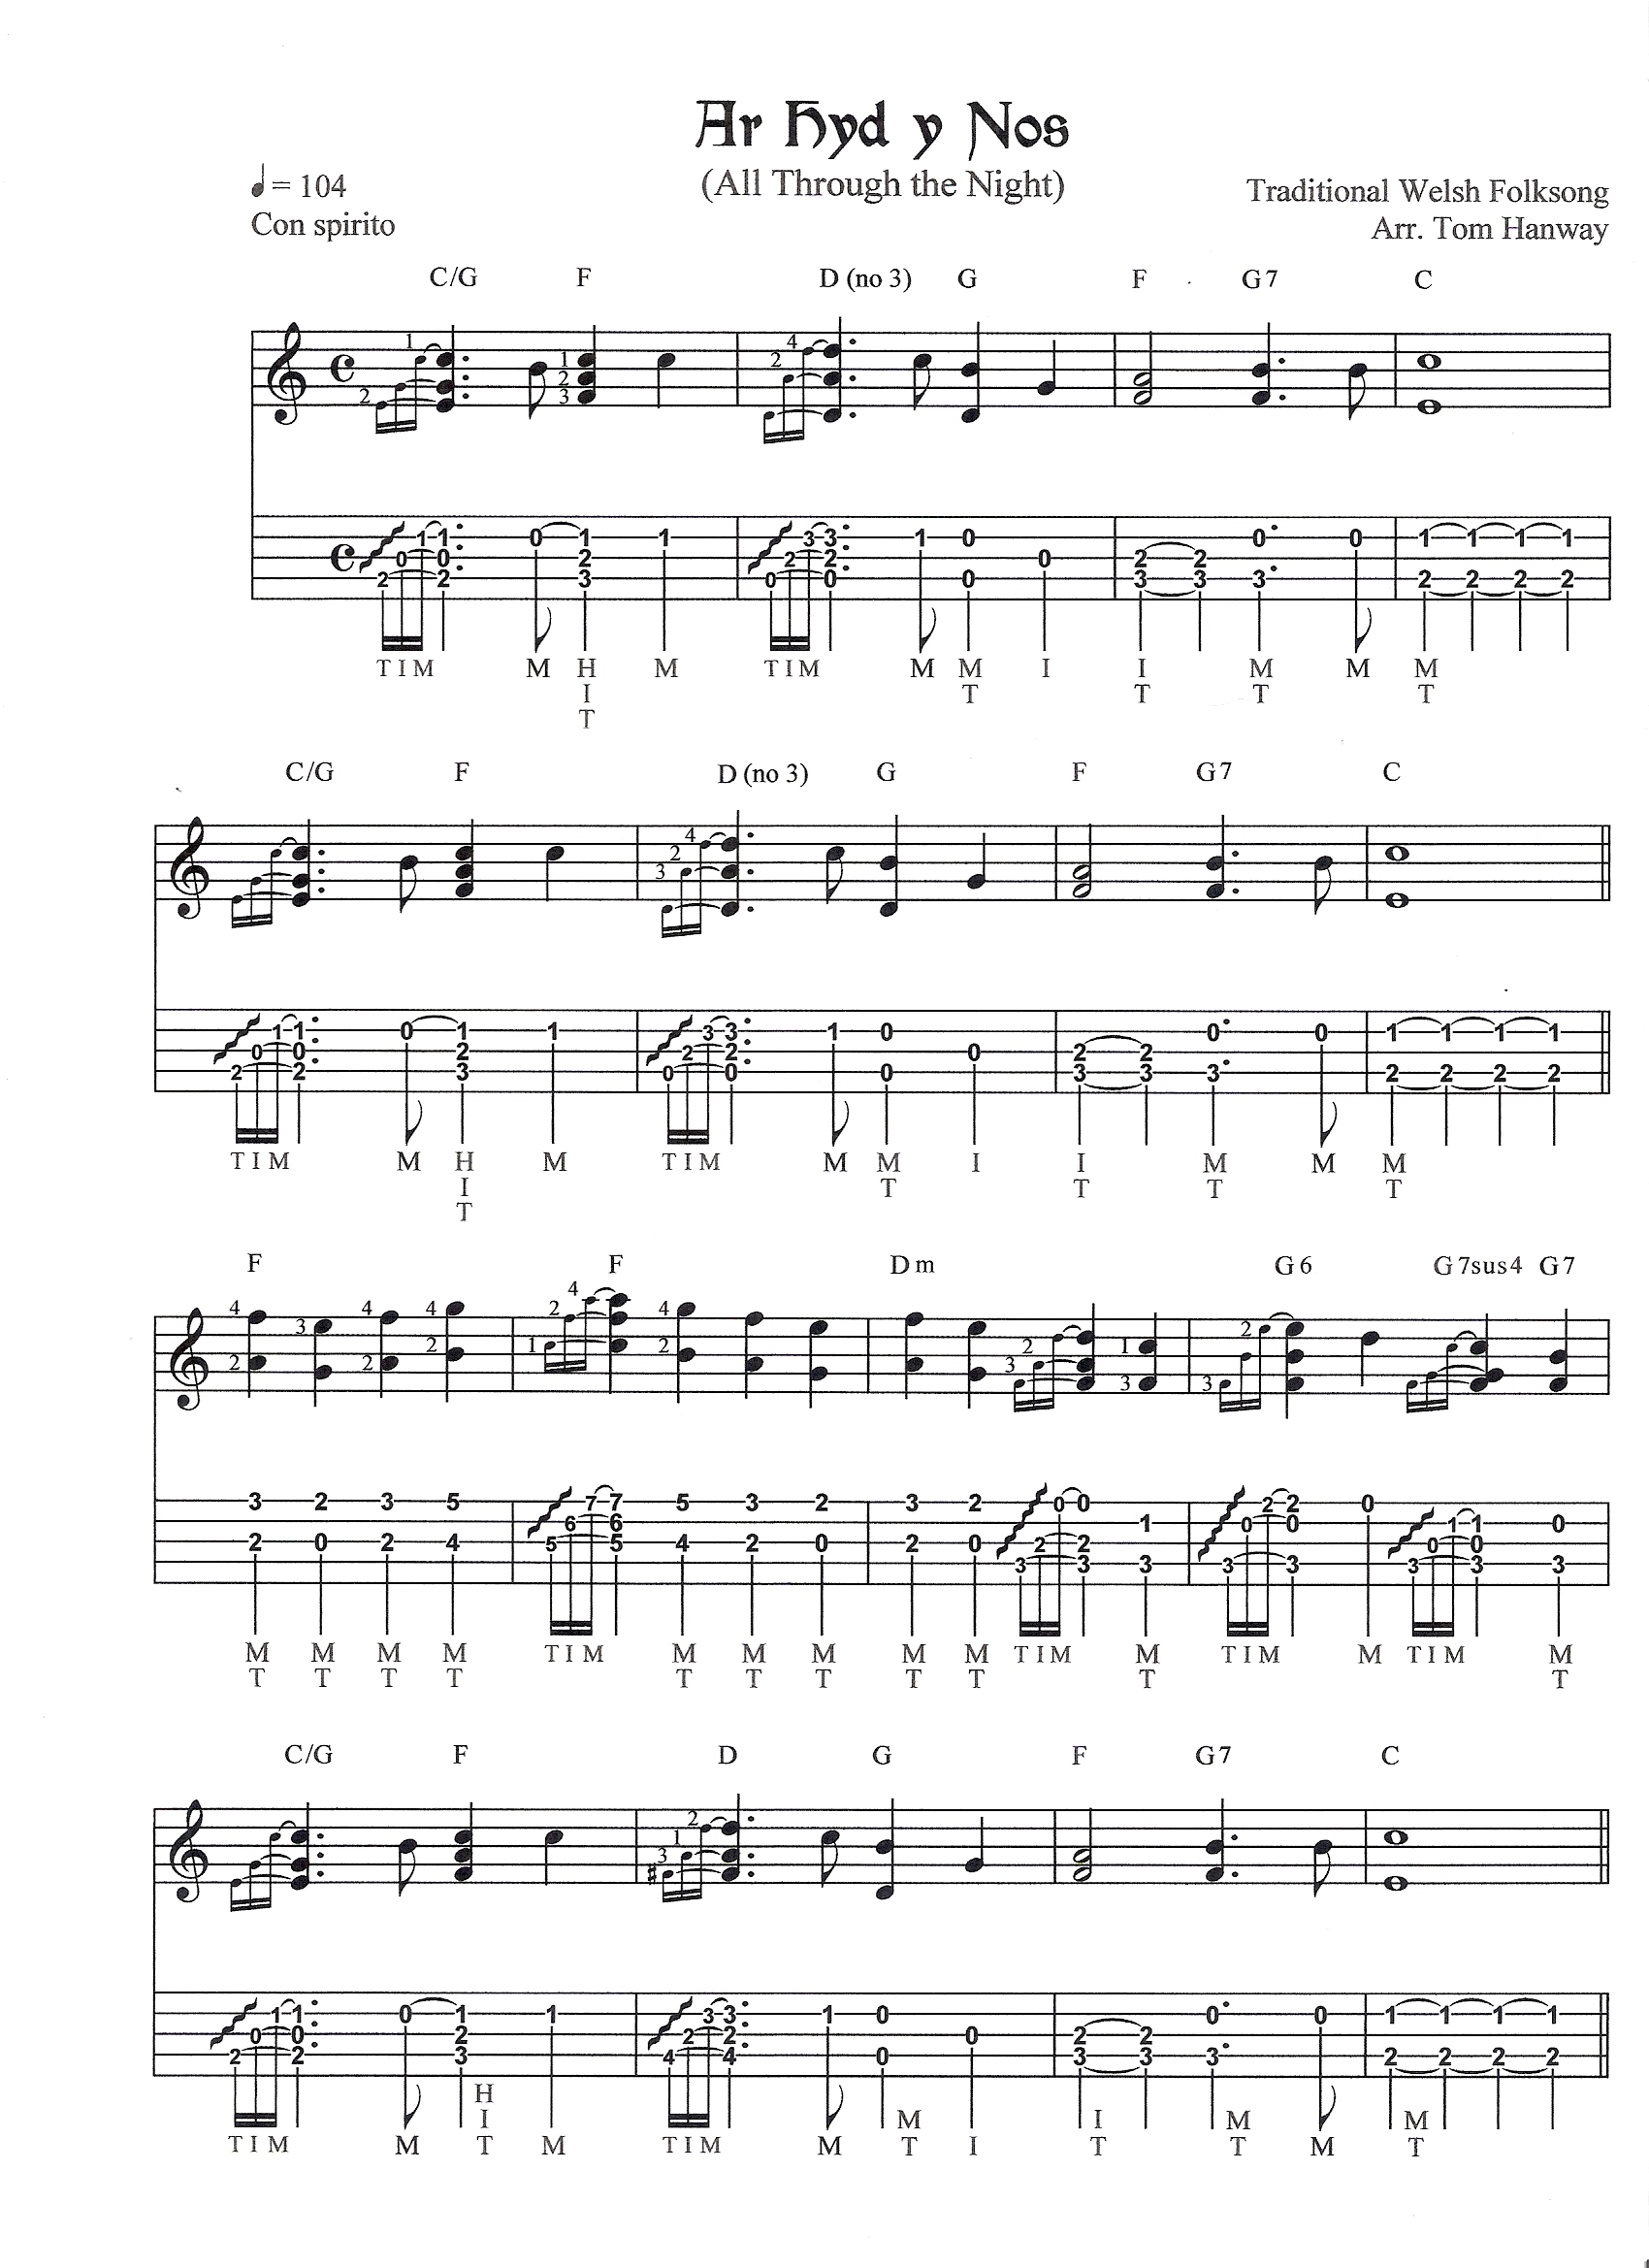 all through the night (ar hyd y nos) 4 variations tab - details and ratings  - banjo hangout  banjo hangout